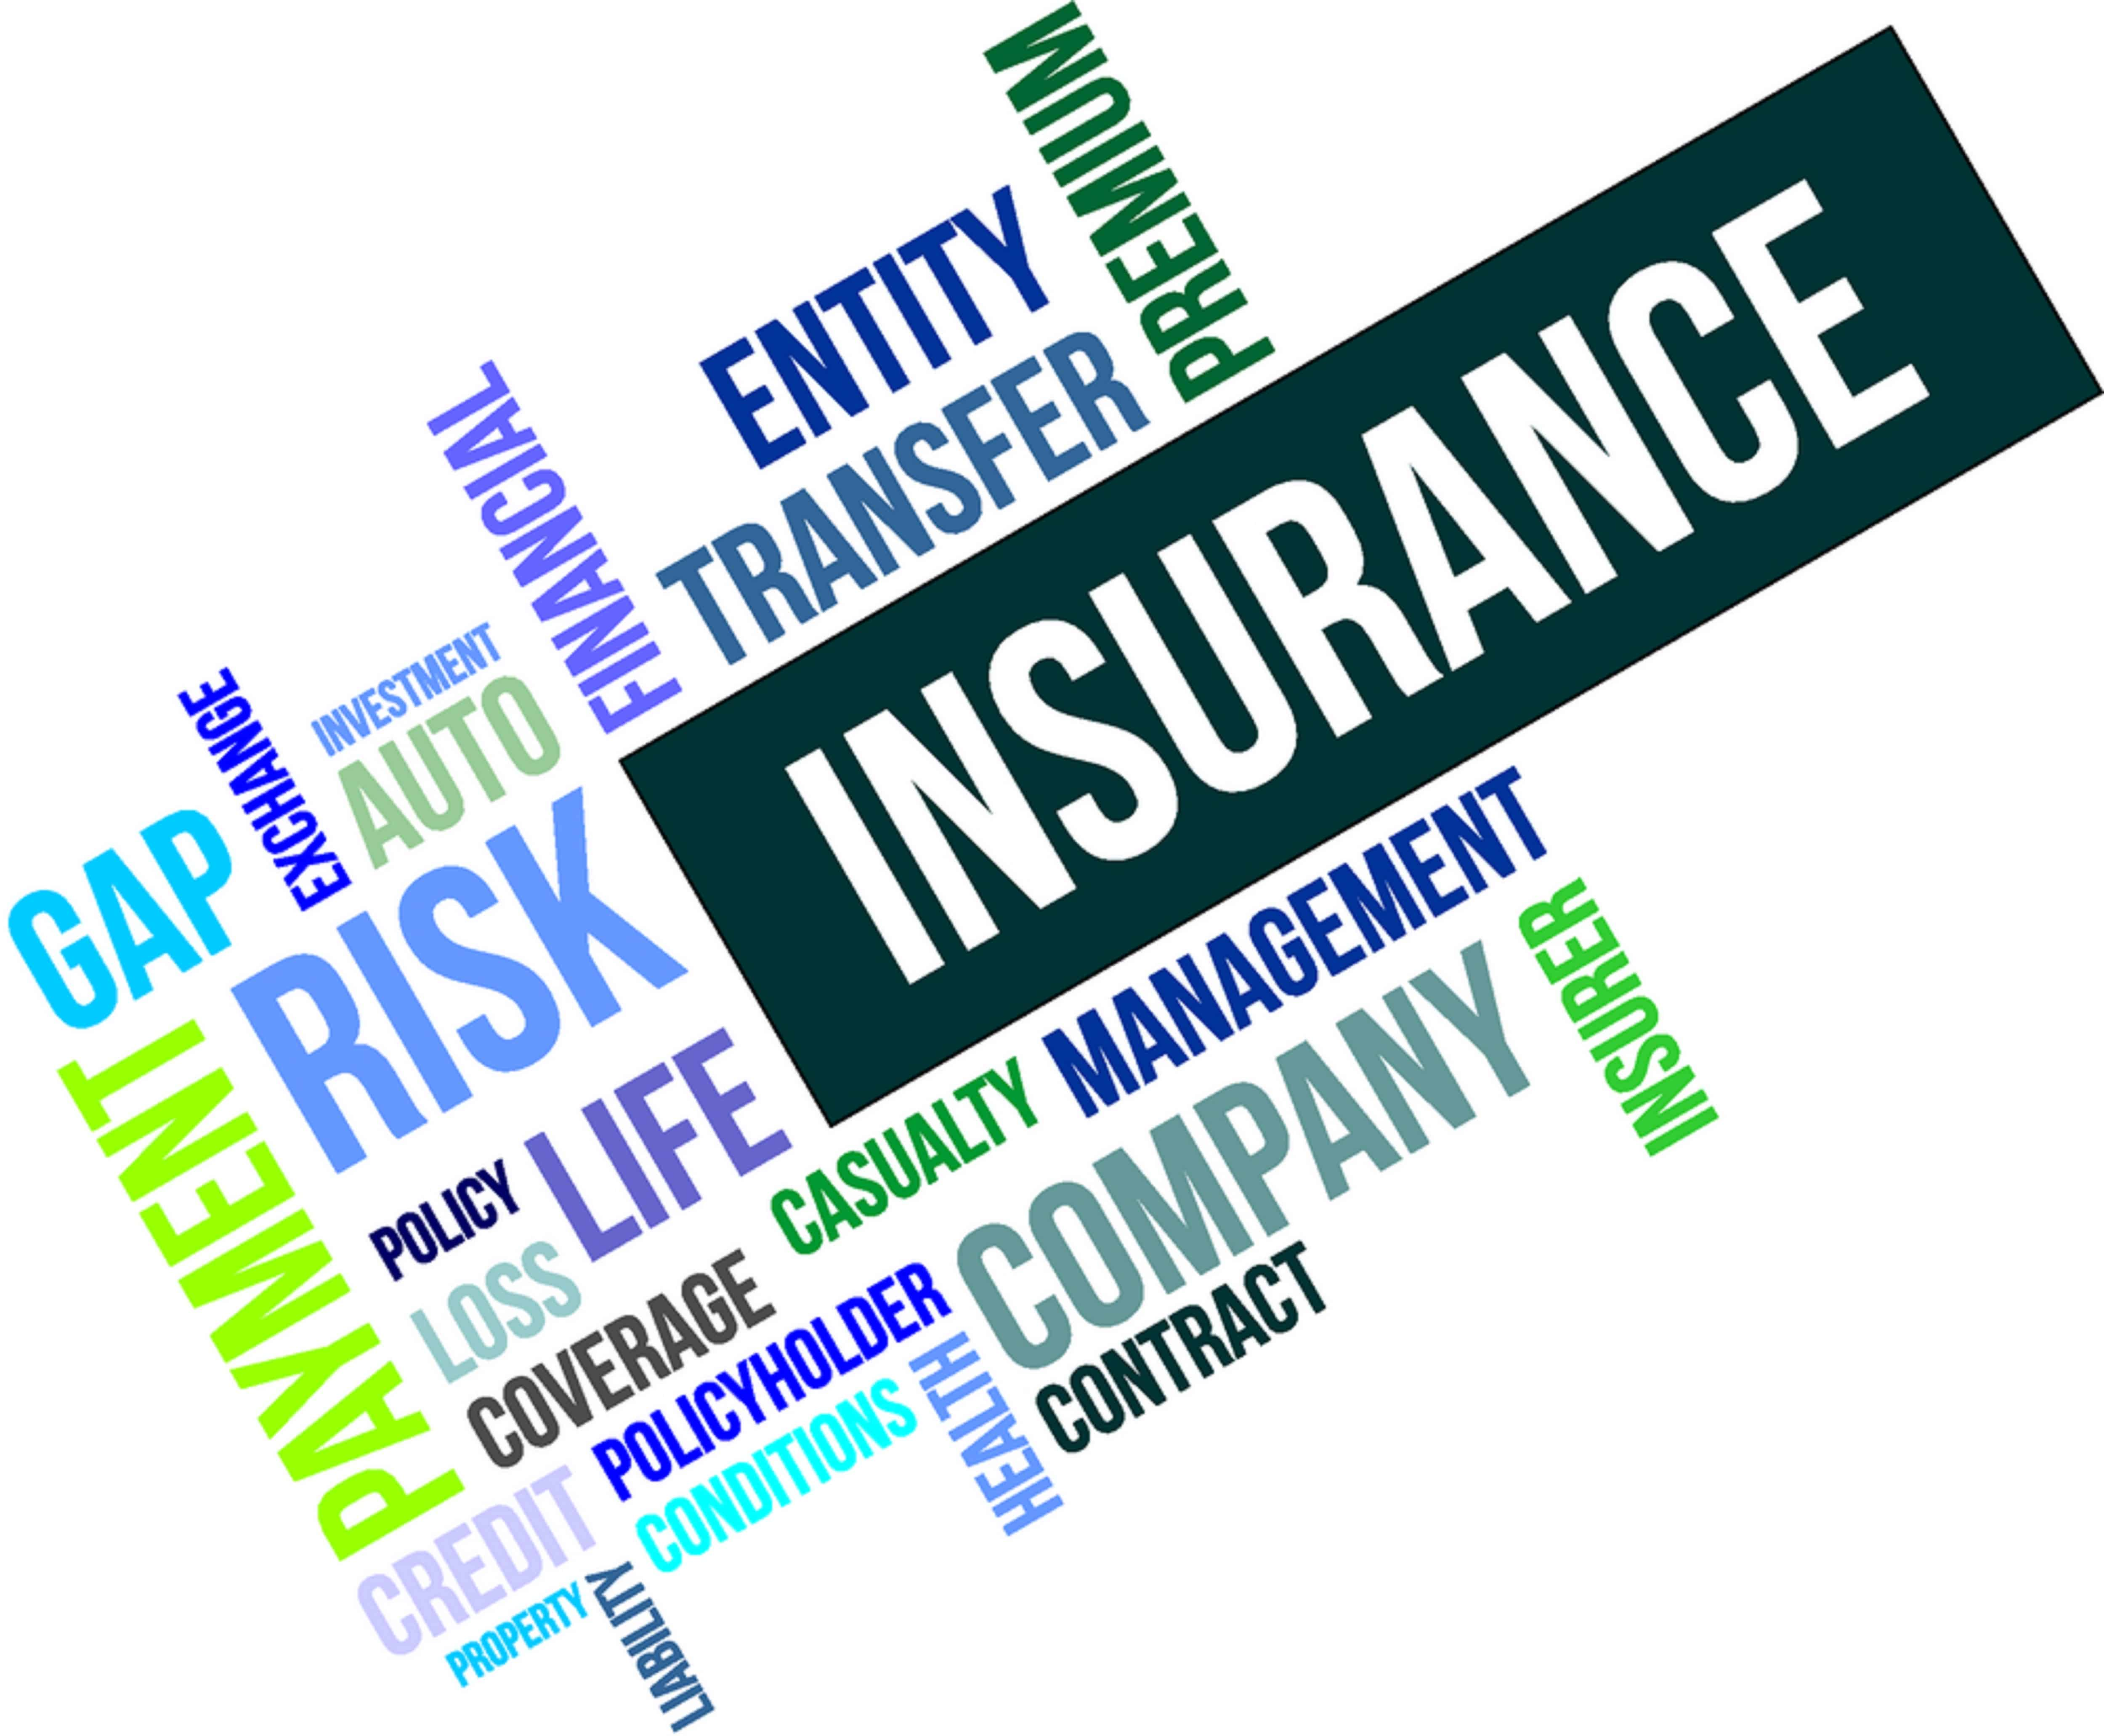 Insurance Pricing Models - Building a Better Insurance Pricing Process